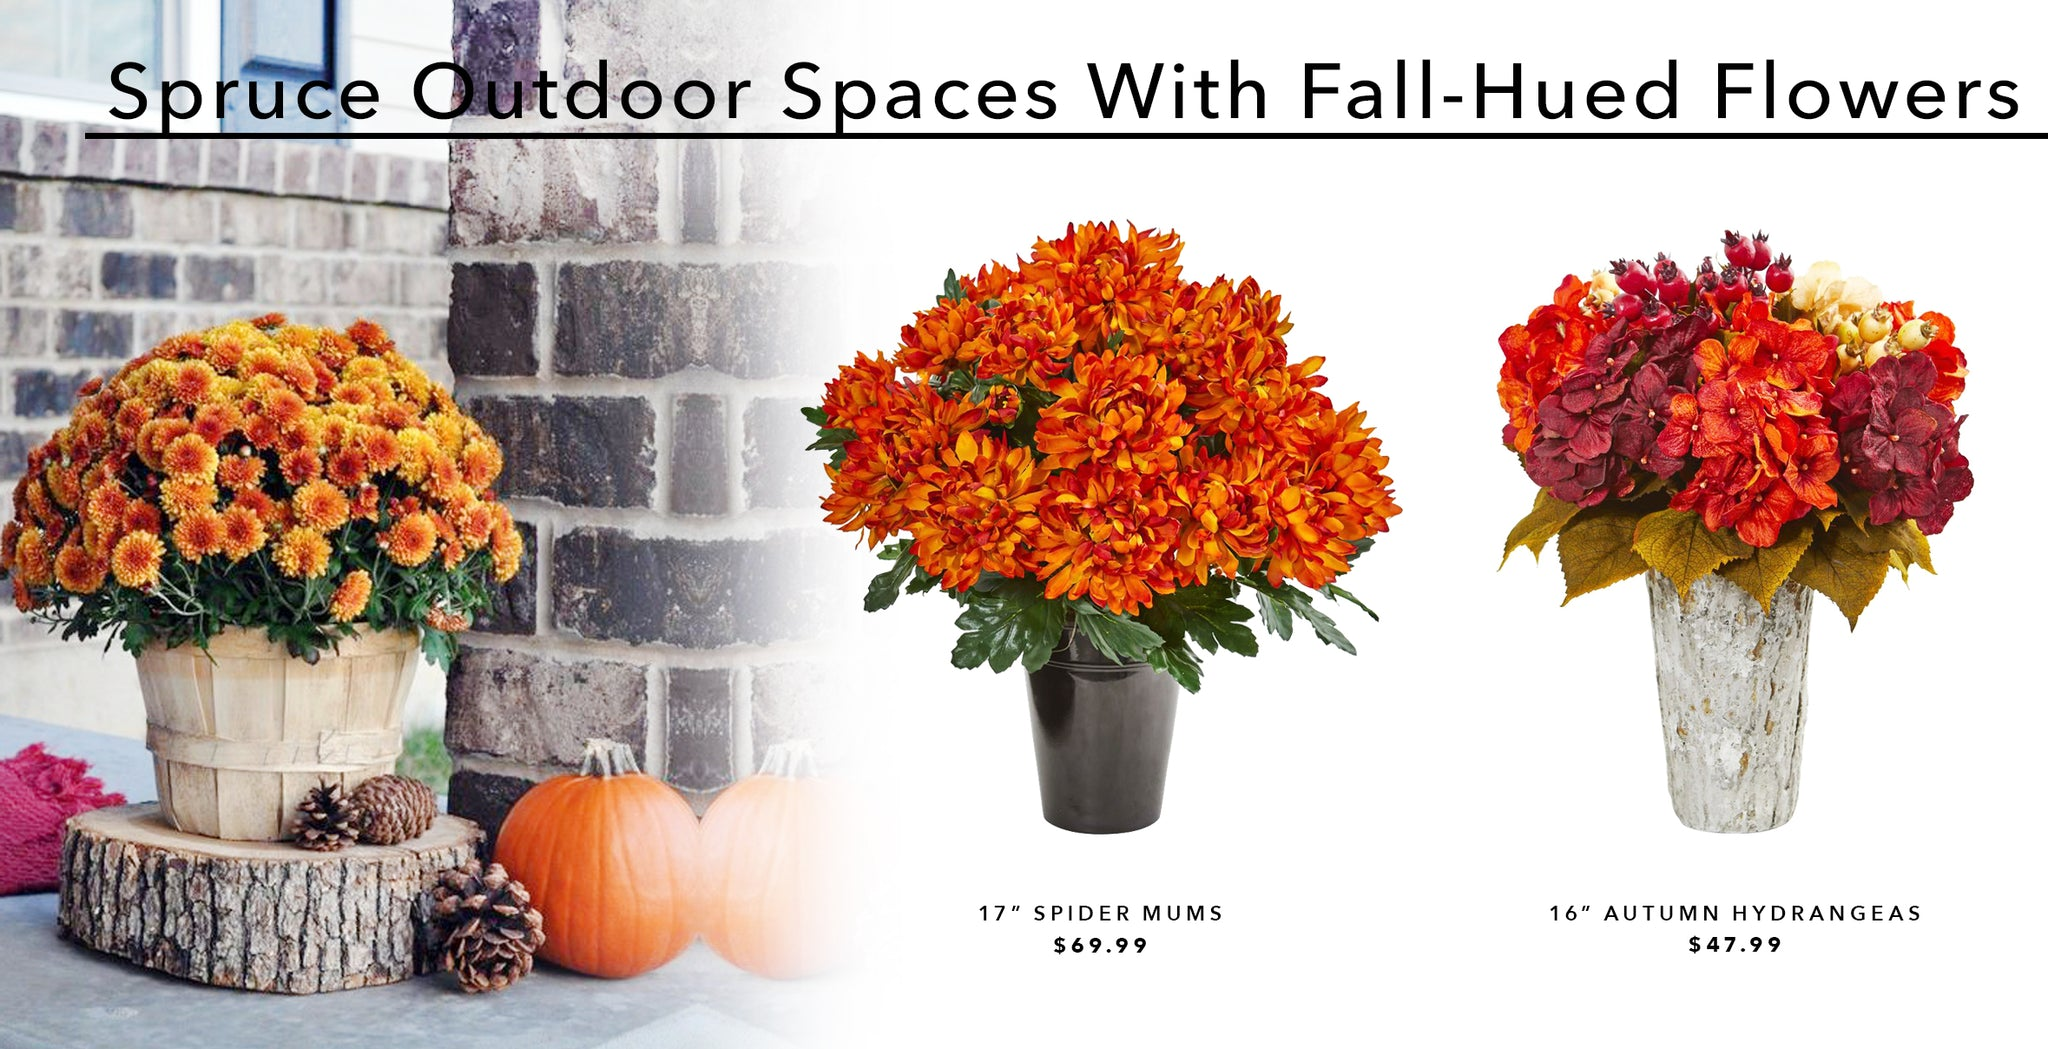 Spruce Up Outdoor Spaces With Fall-Hued Flowers